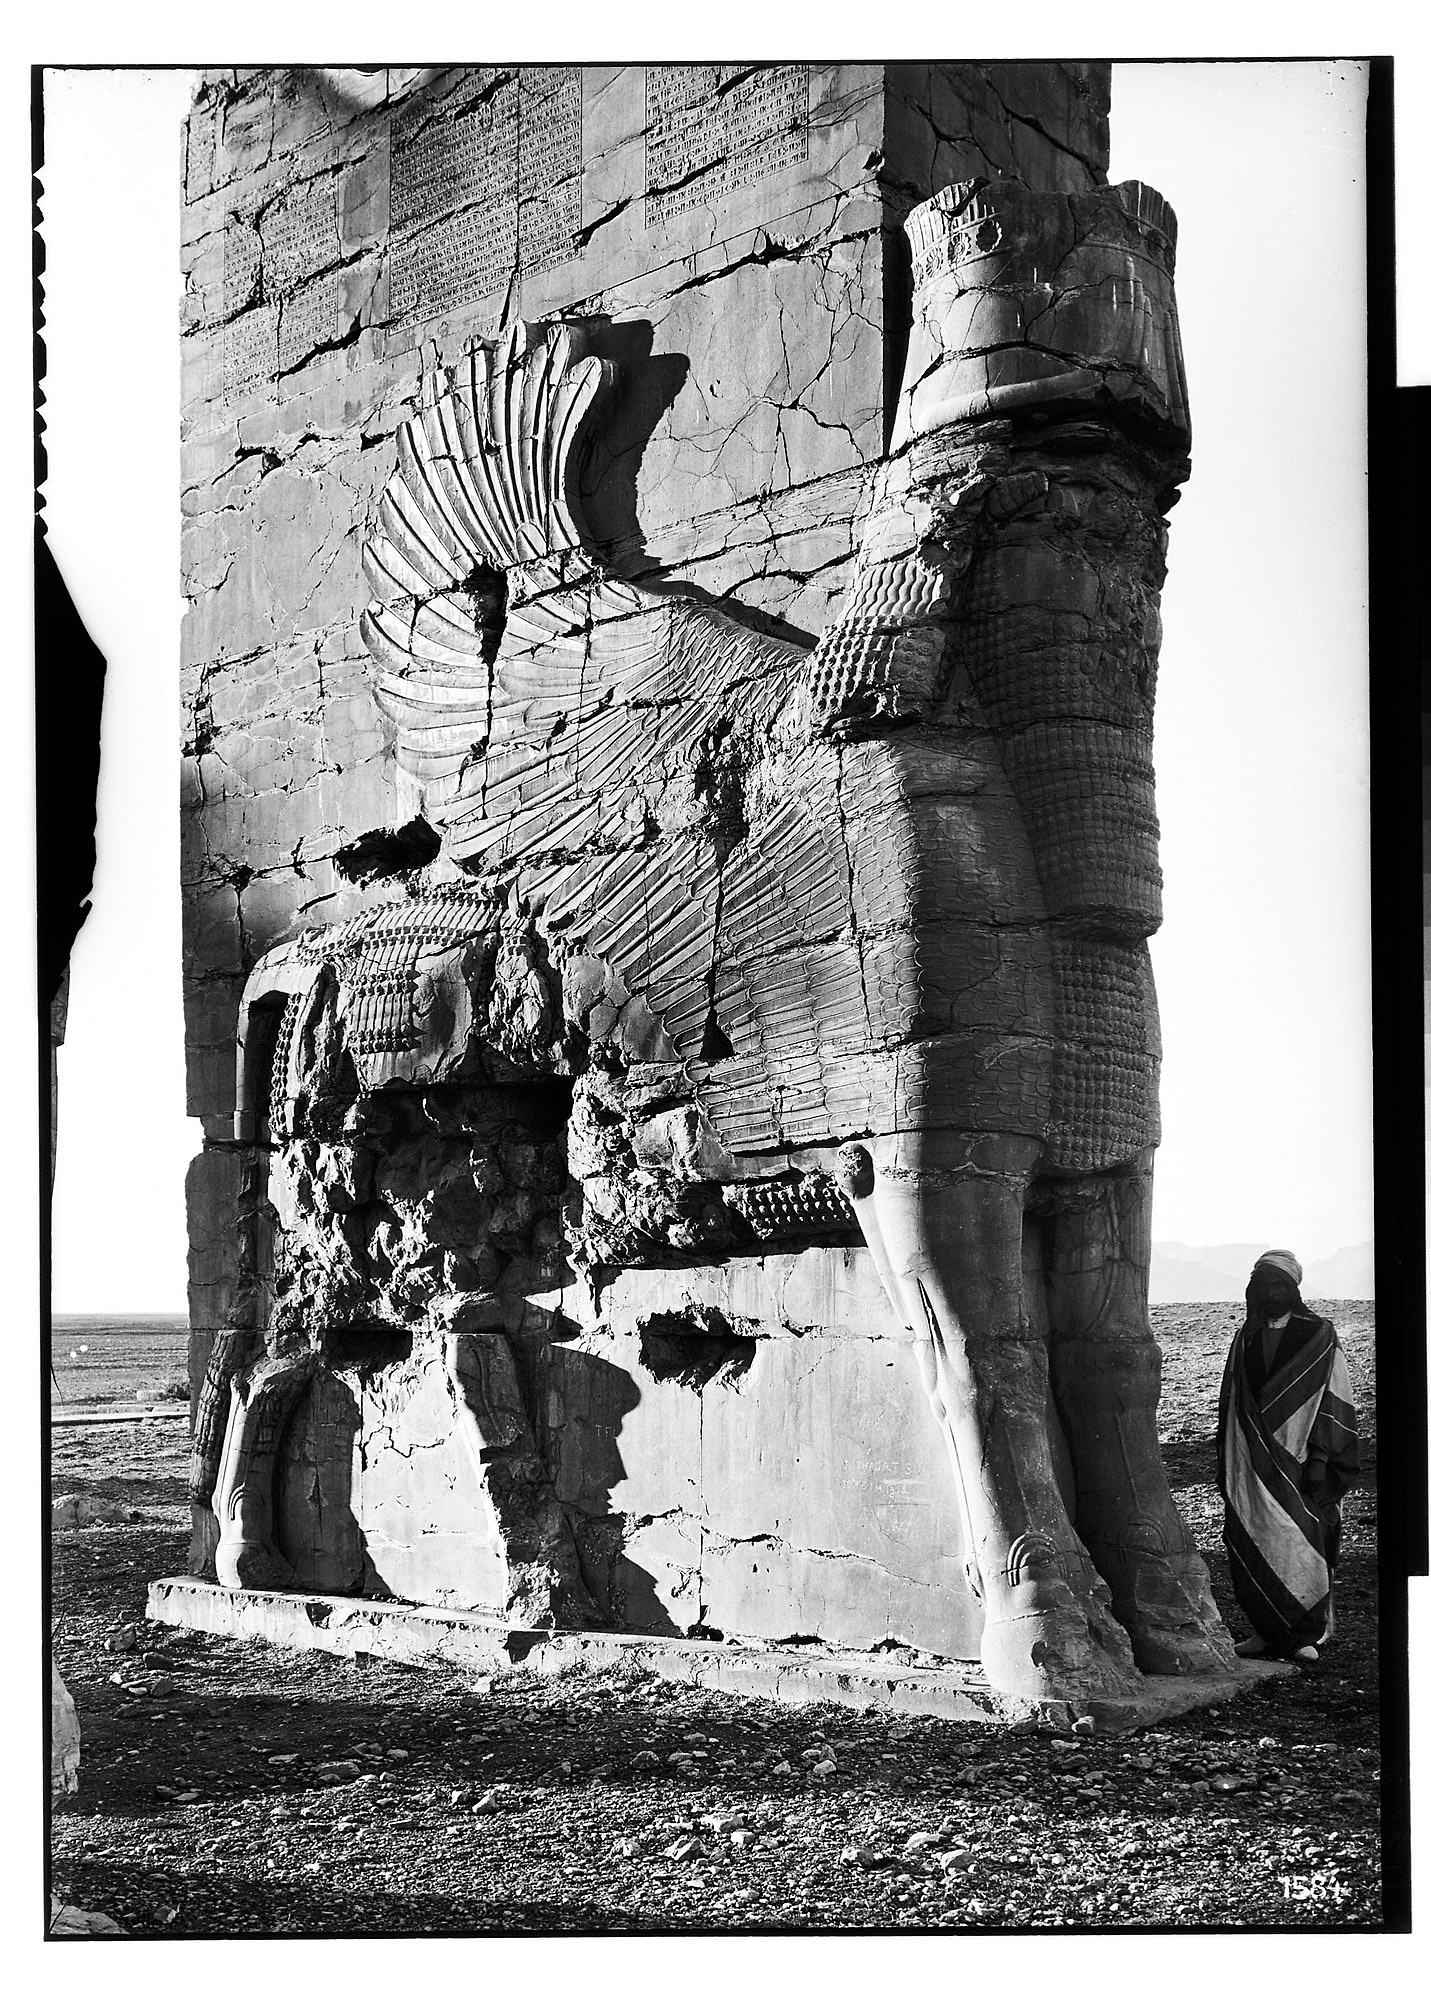 images for Excavation of Persepolis (Iran): Gate of All Lands, Colossal Sculpture Depicting Man-Bull: View before Excavation, Looking West graphic